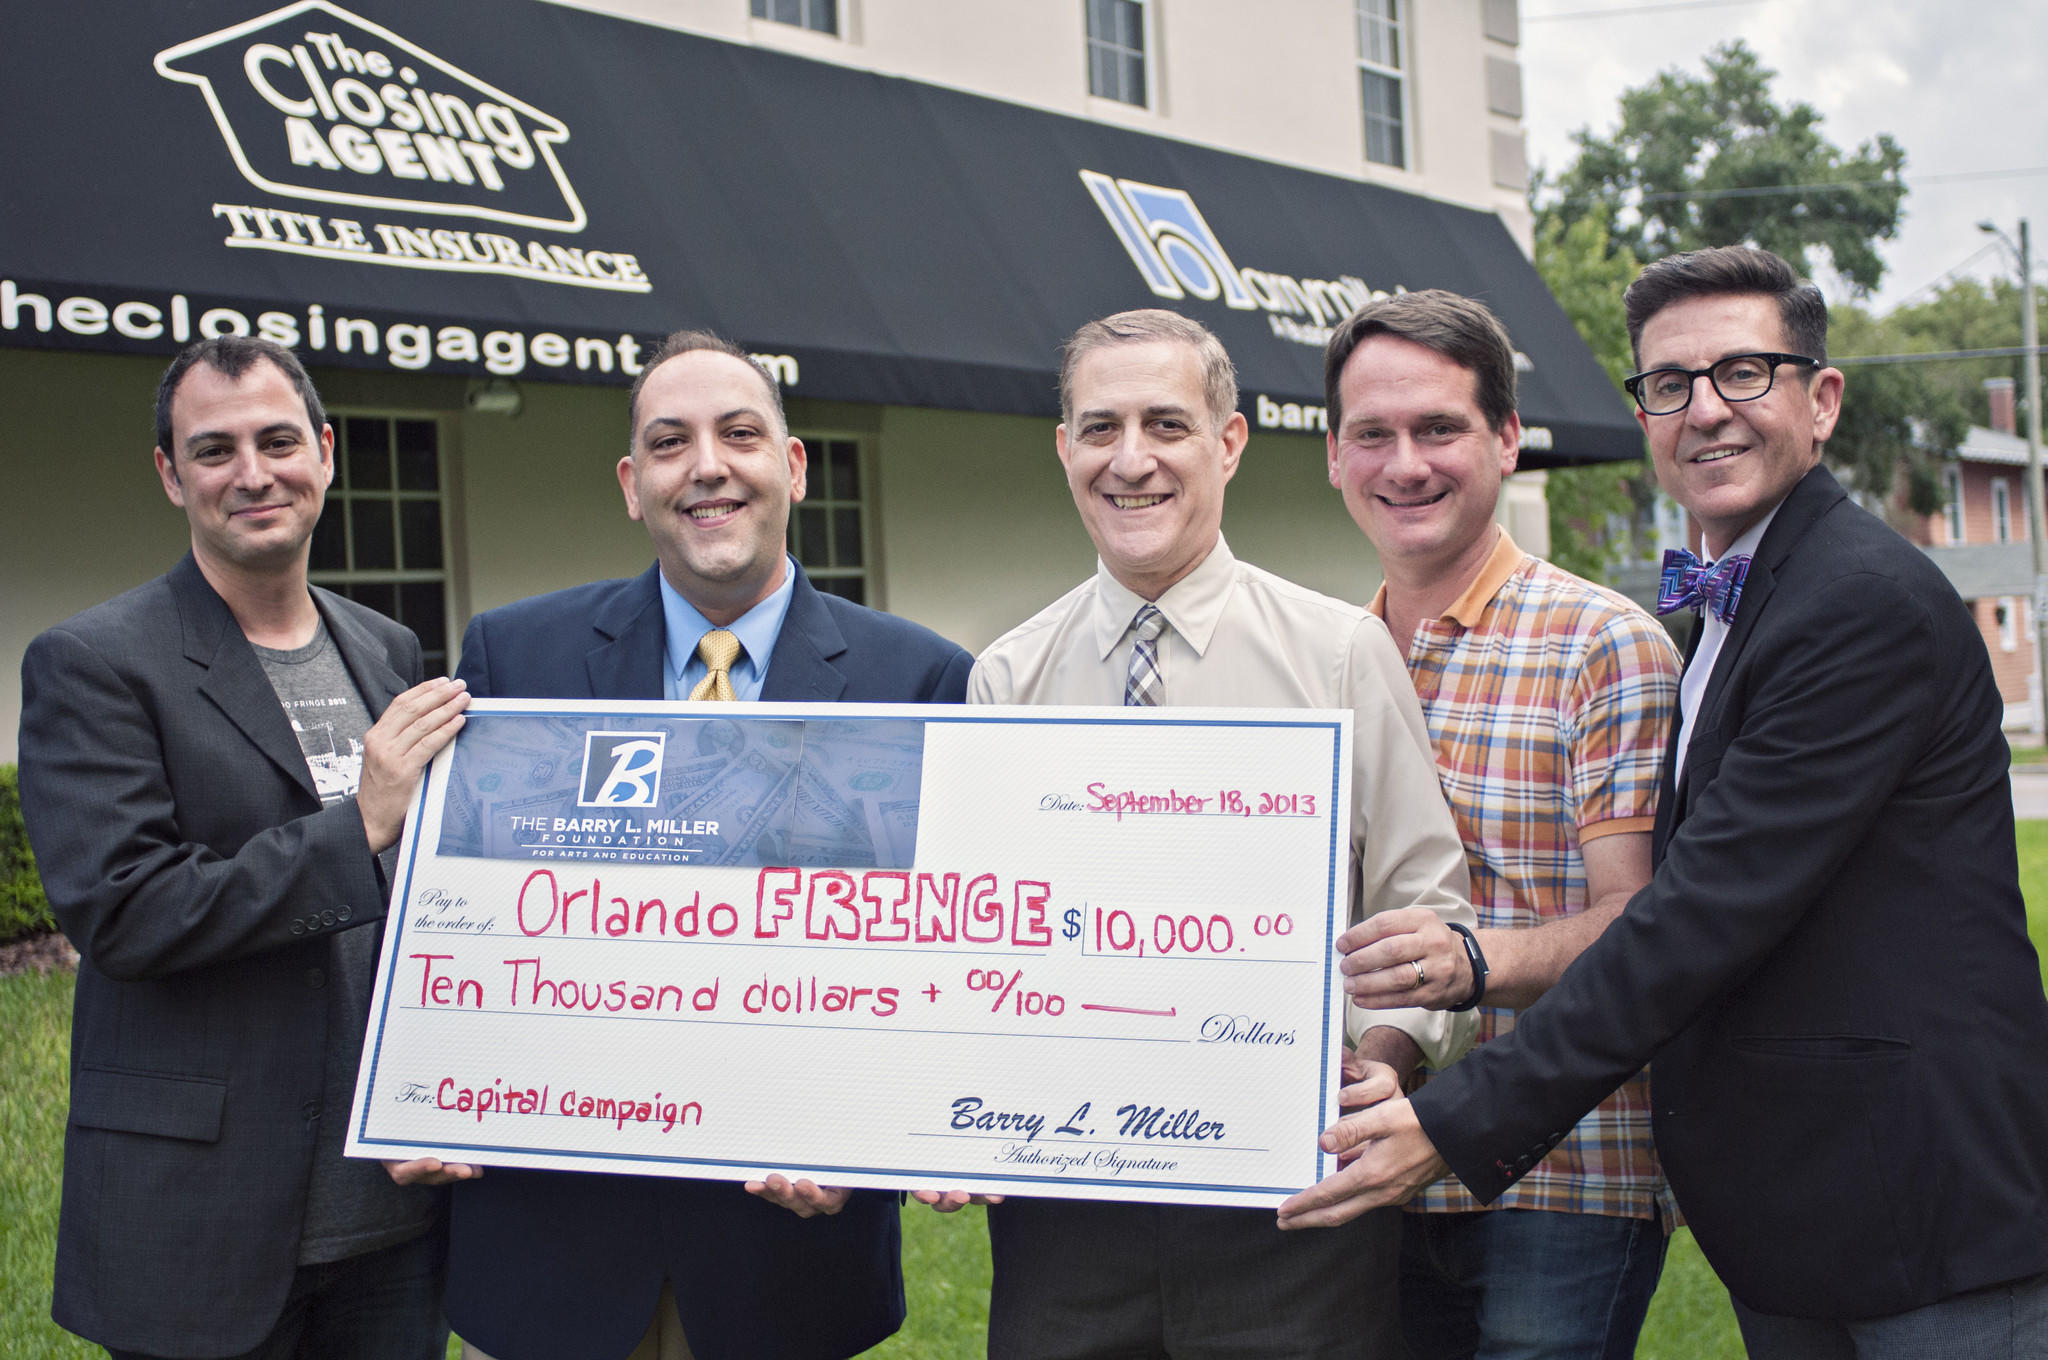 The Barry L. Miller Foundation for Arts and Education presented $10,000 to the Orlando Fringe Festival. Pictured (from left): Mike Marinaccio, Orlando Fringe Festival producer; George Wallace, Orlando Fringe general manager; Barry L. Miller, founder of the Barry L. Miller Foundation for Arts and Education; Kenny Howard, theater director and Broadway producer; and David F. Baldree, Orlando Fringe president.